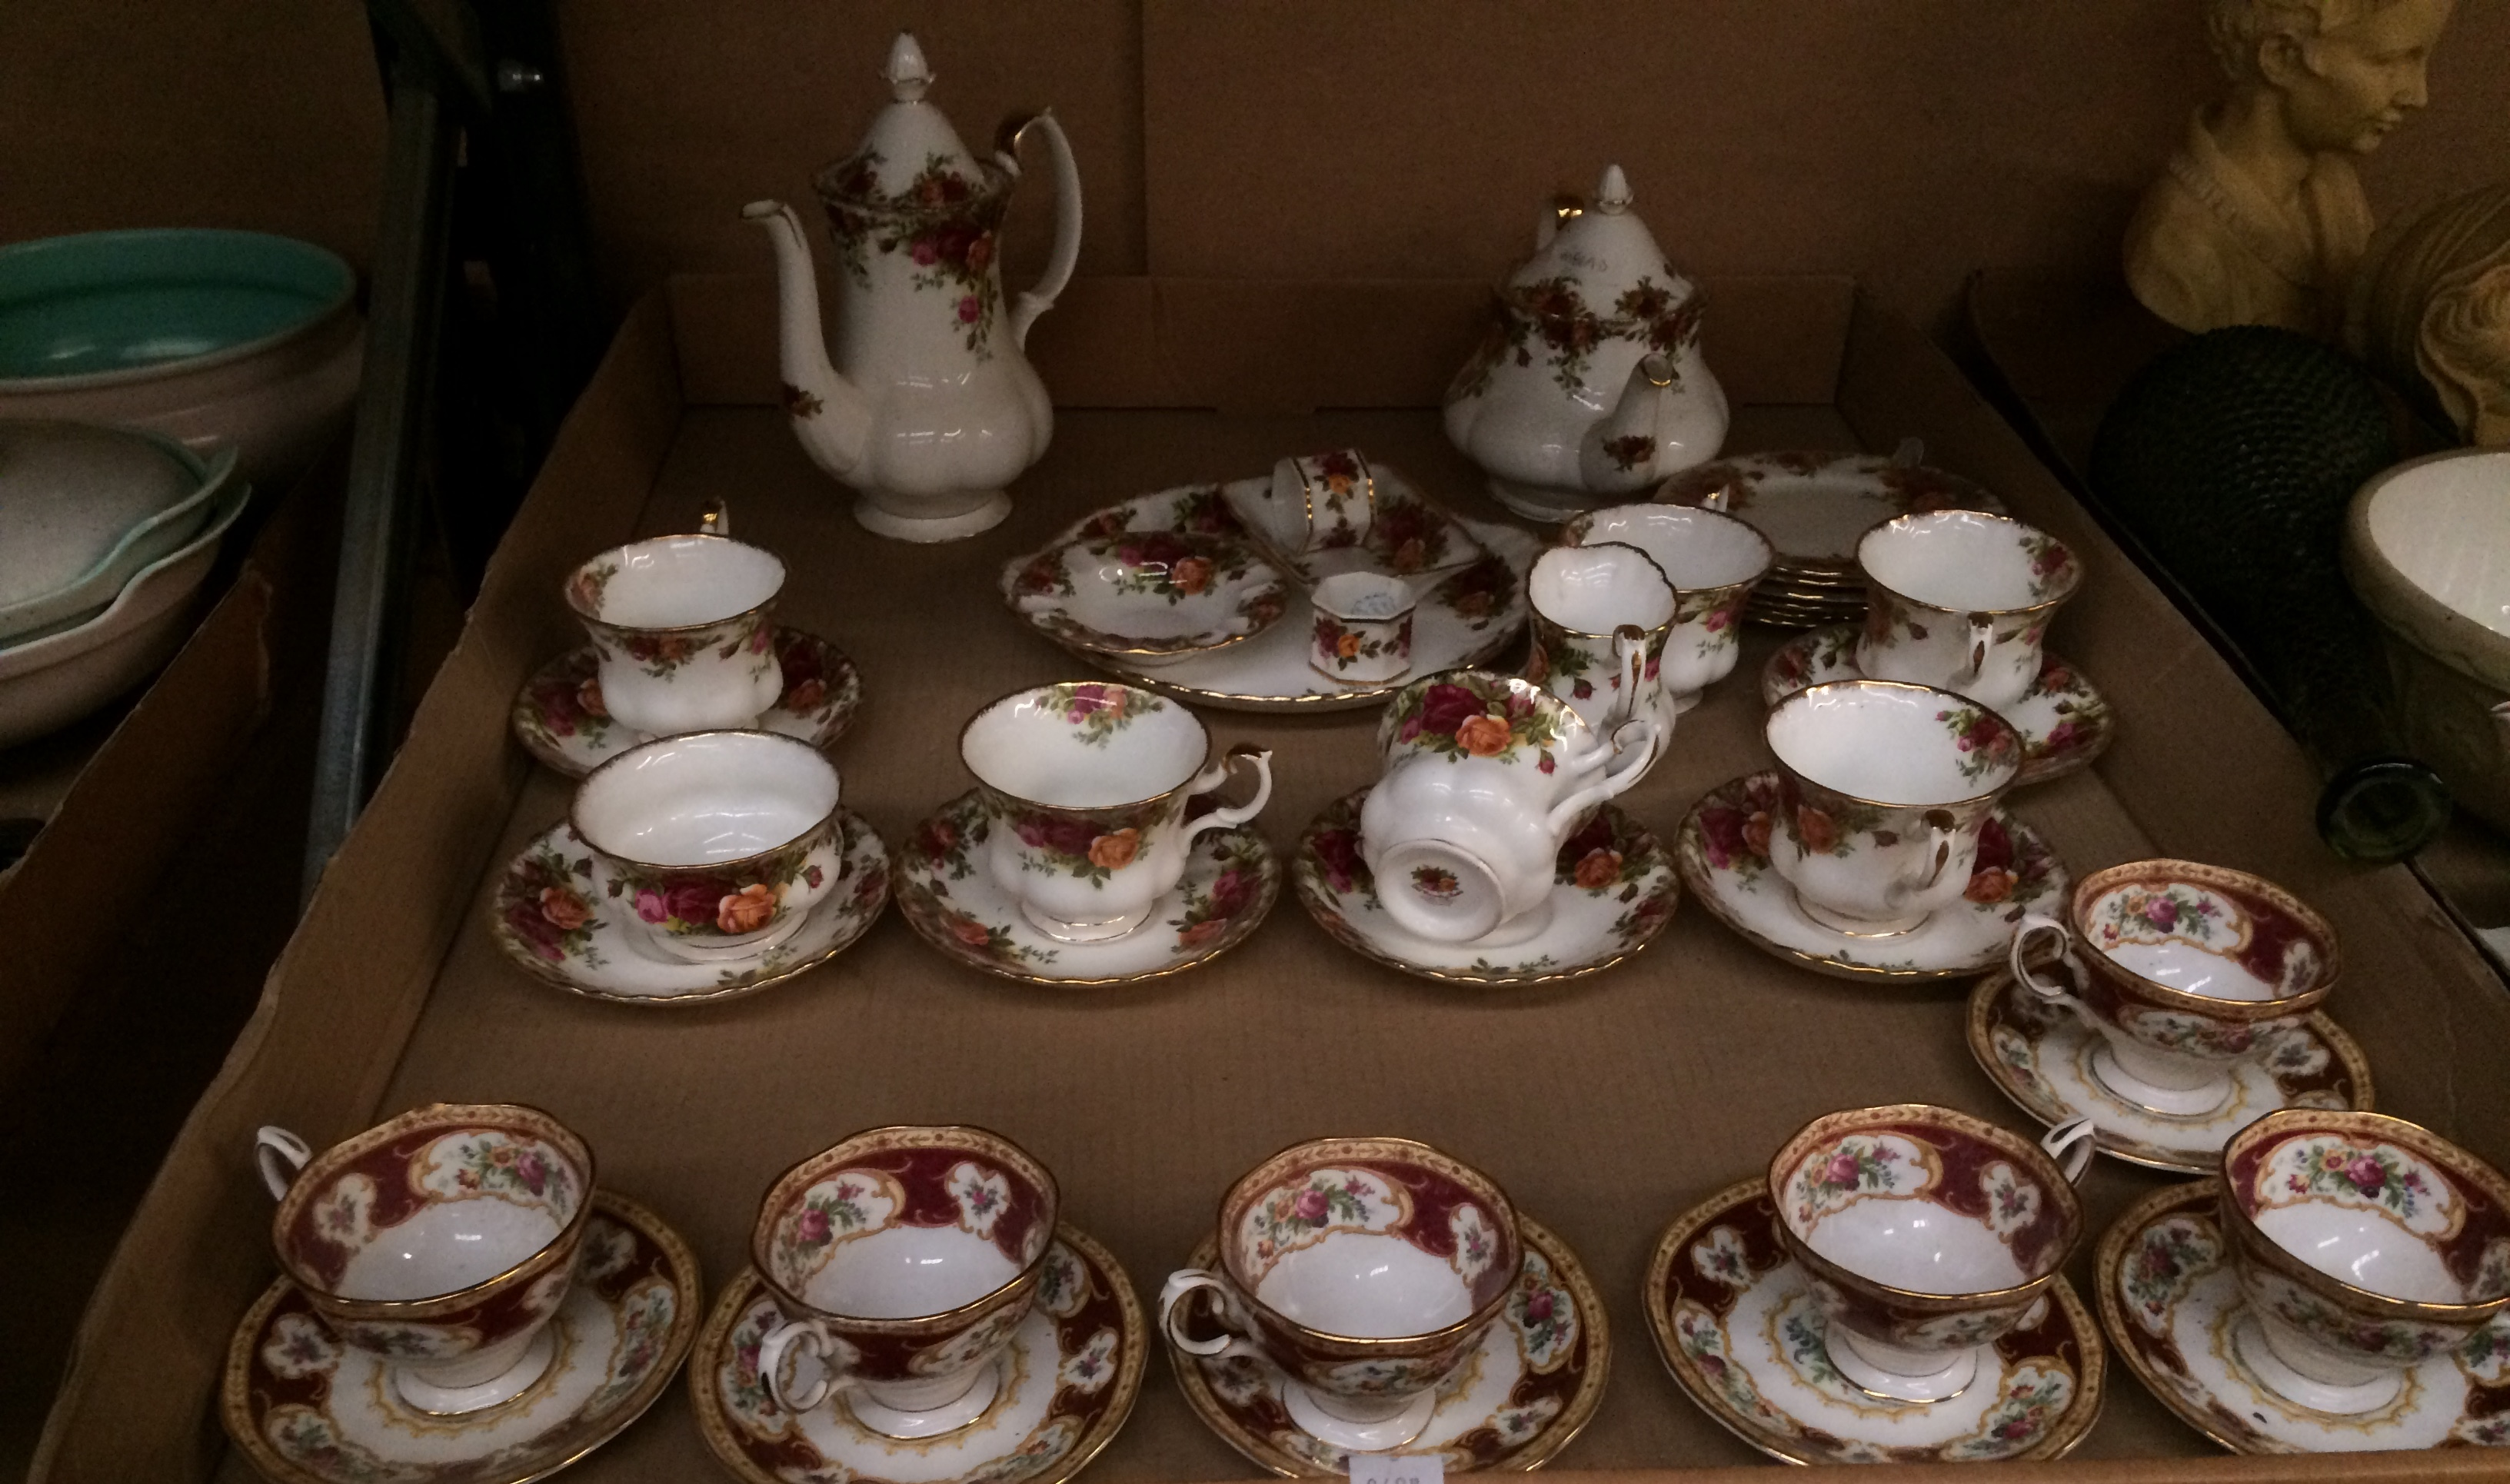 Lot 312 - Contents to tray - 27 x pieces of Royal Albert Old Country Roses bone china tea service - coffee